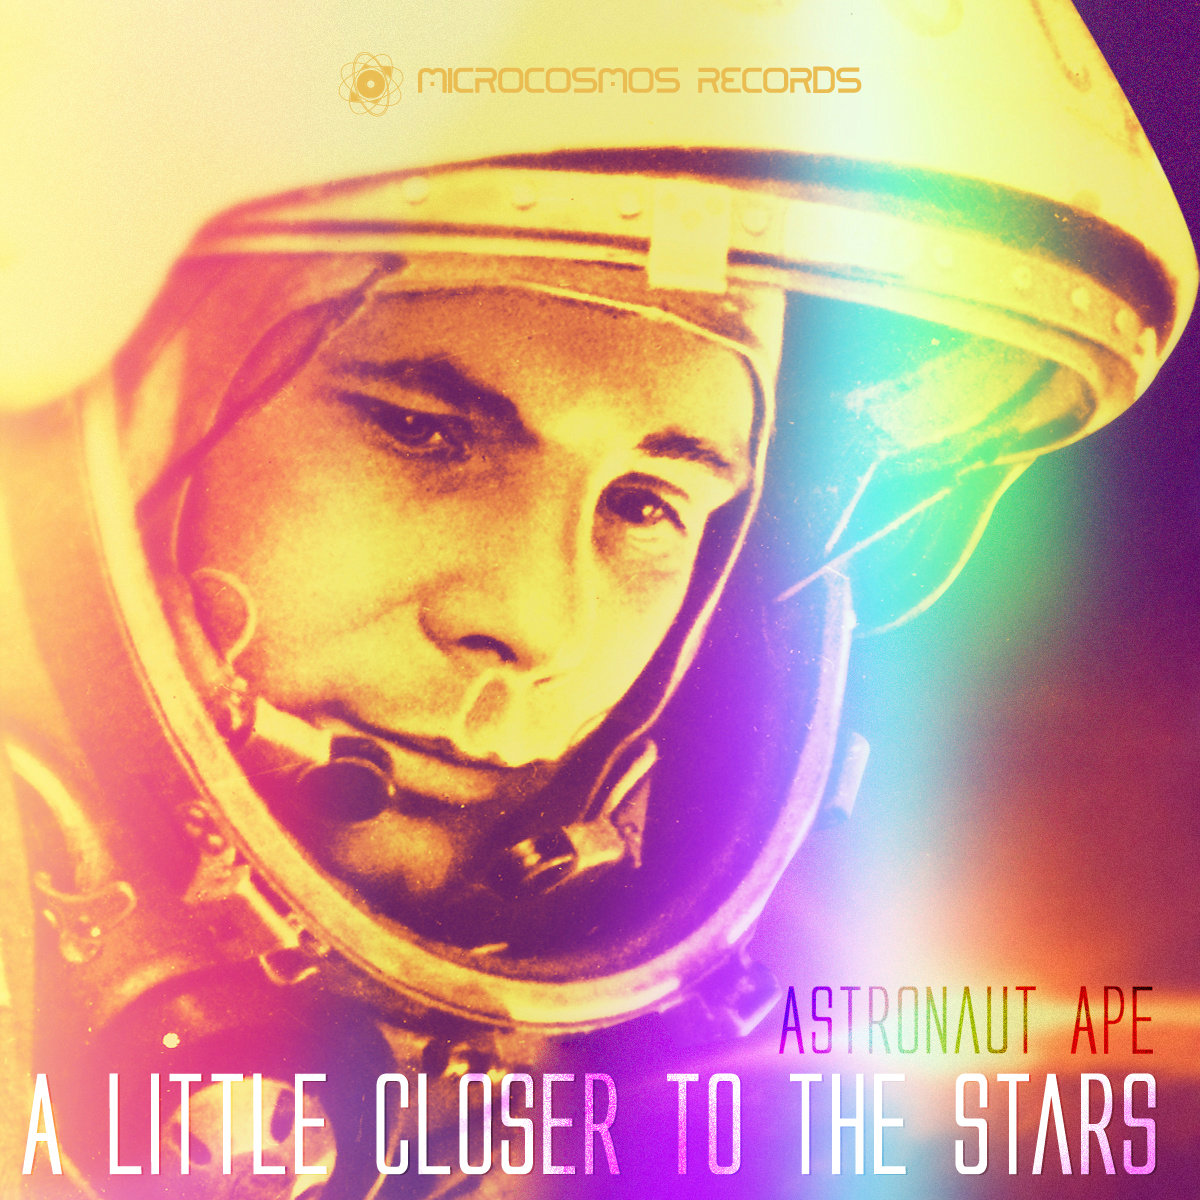 Astronaut Ape - Mir Space Station @ 'A Little Closer To The Stars' album (ambient, chill-out)